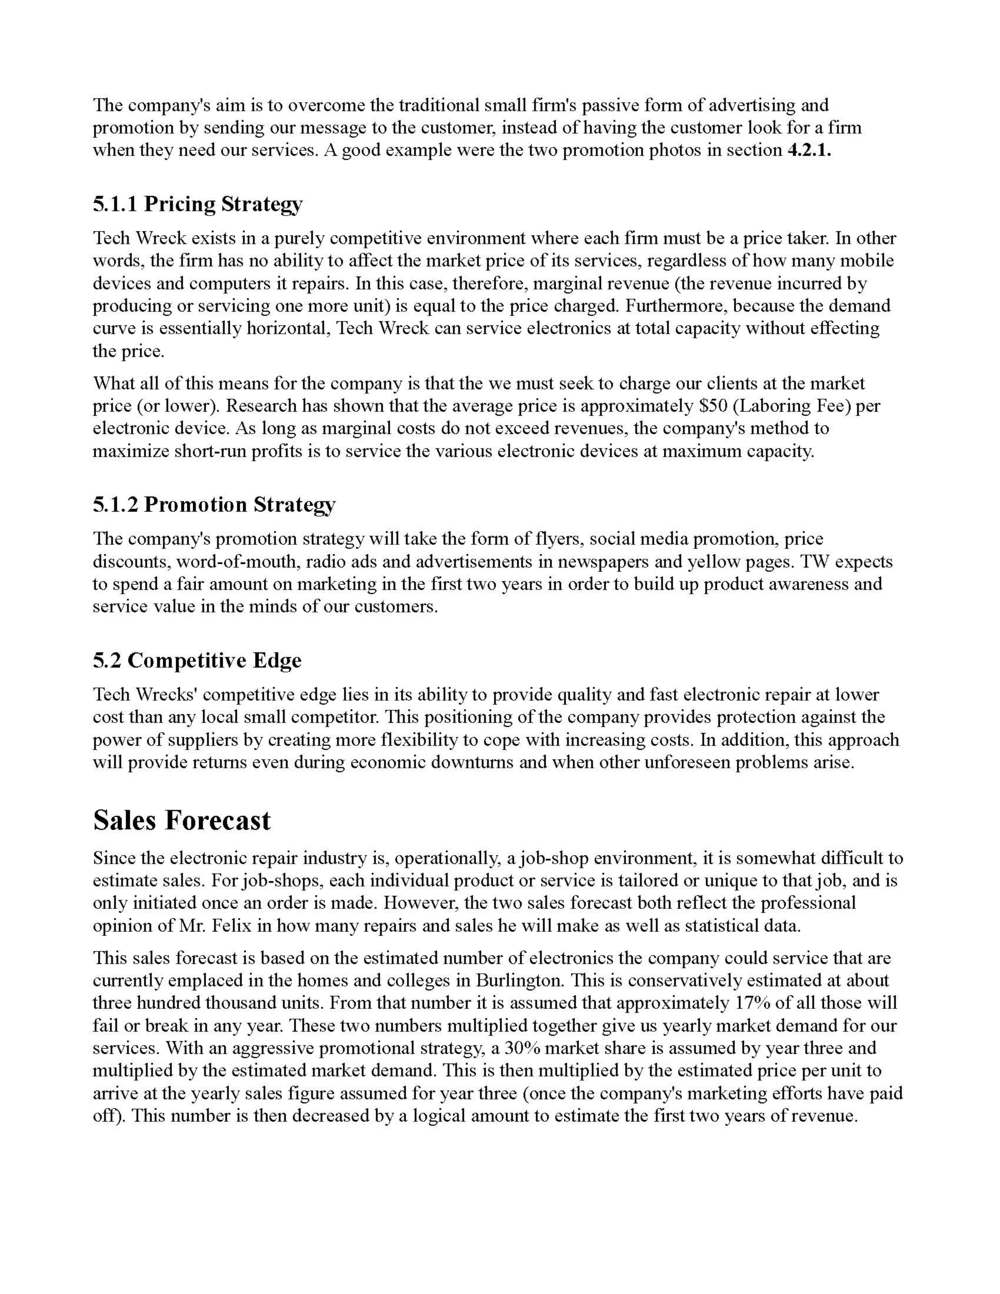 Tech Wreck 3 Year Business Plan_Page_13.jpg